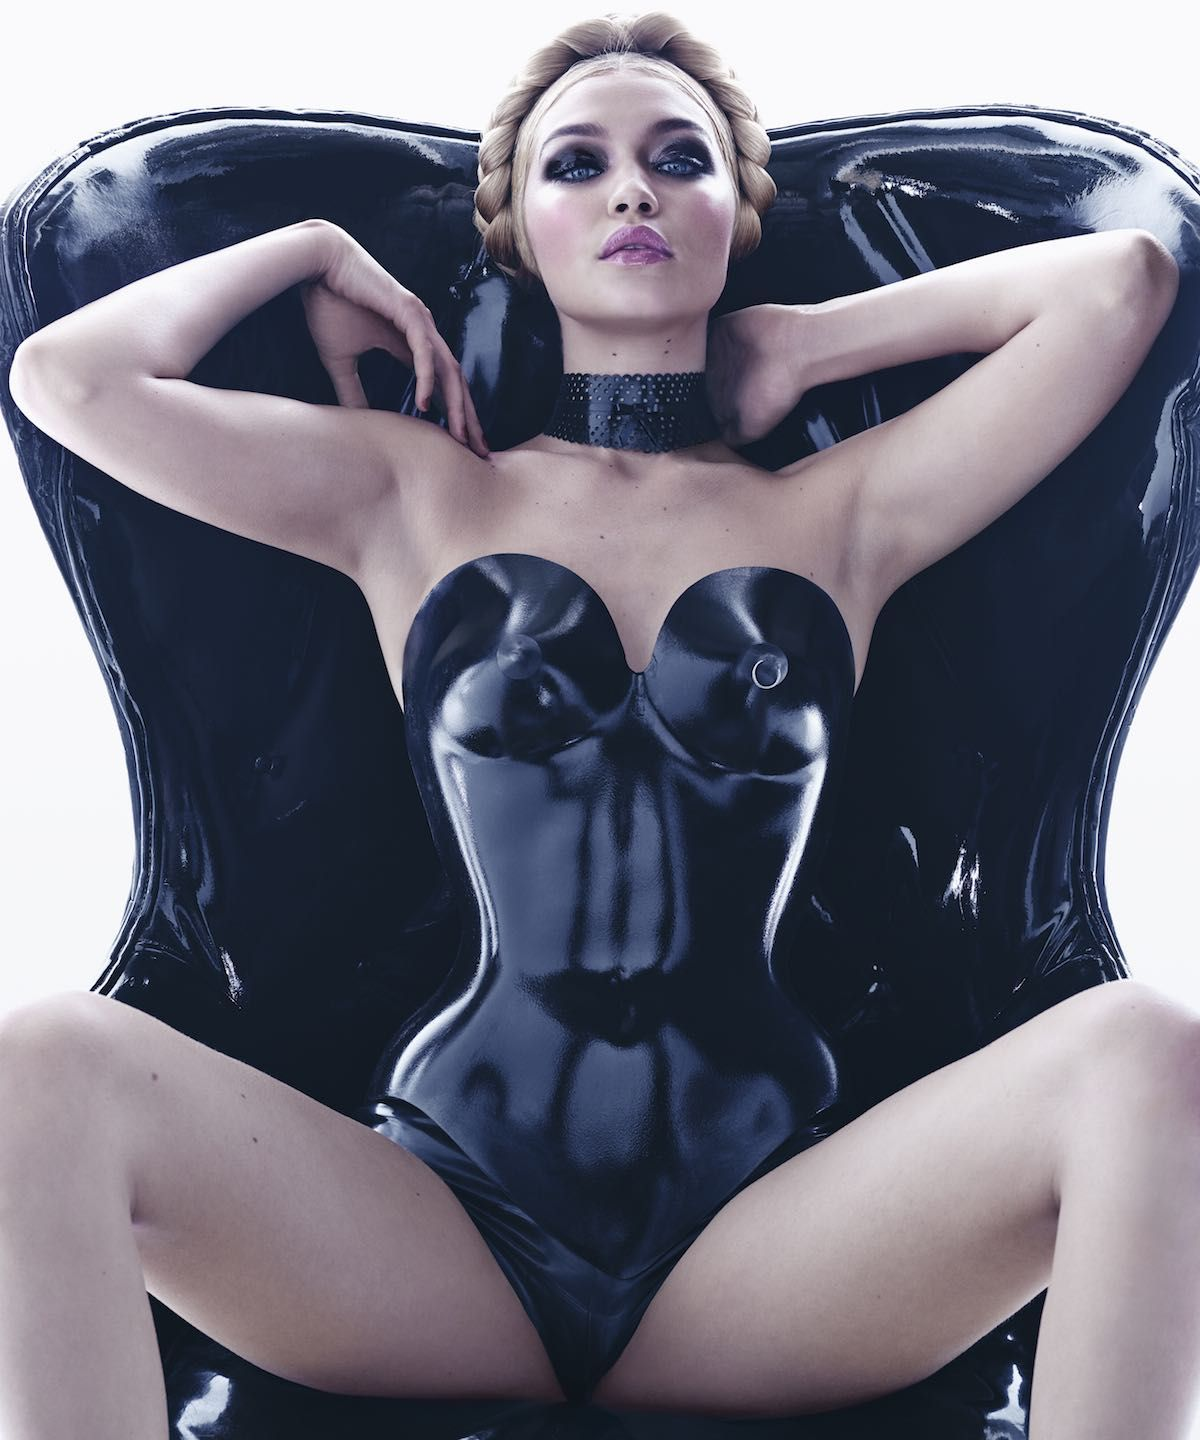 Gigi Hadid Latex Pirelli Calendar ,  Sexiest photos, cool girls, nice body, sexy boobs, sexy ass, beautiful girls, sexyphoto.es